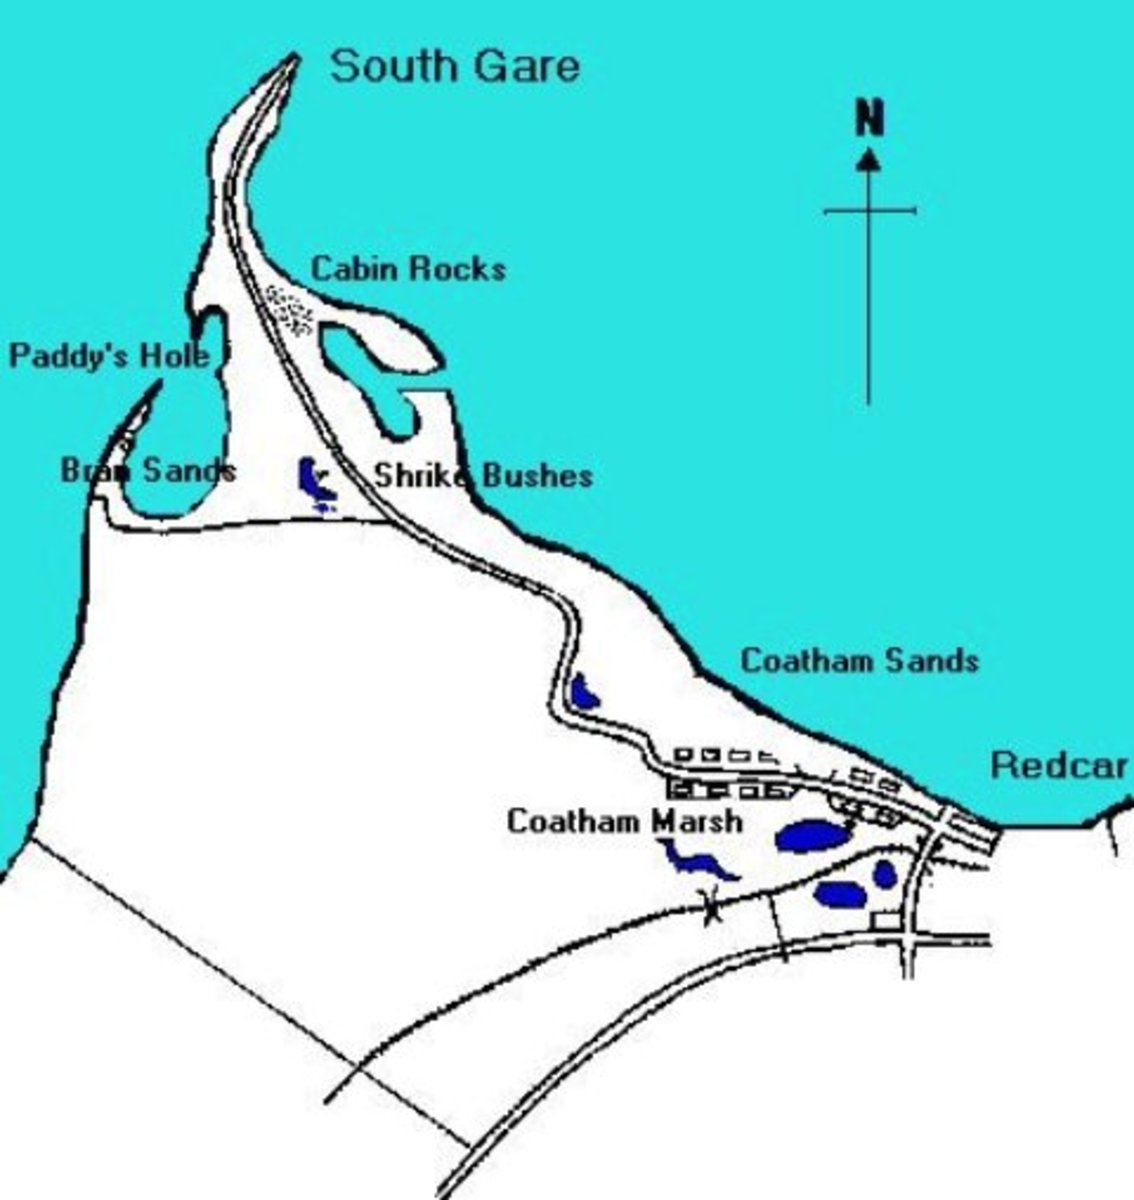 The end of the road - South Gare map with the southern shore of the Tees to the left, guarded by the two breakwaters - North Gare is on what was the County Durham side